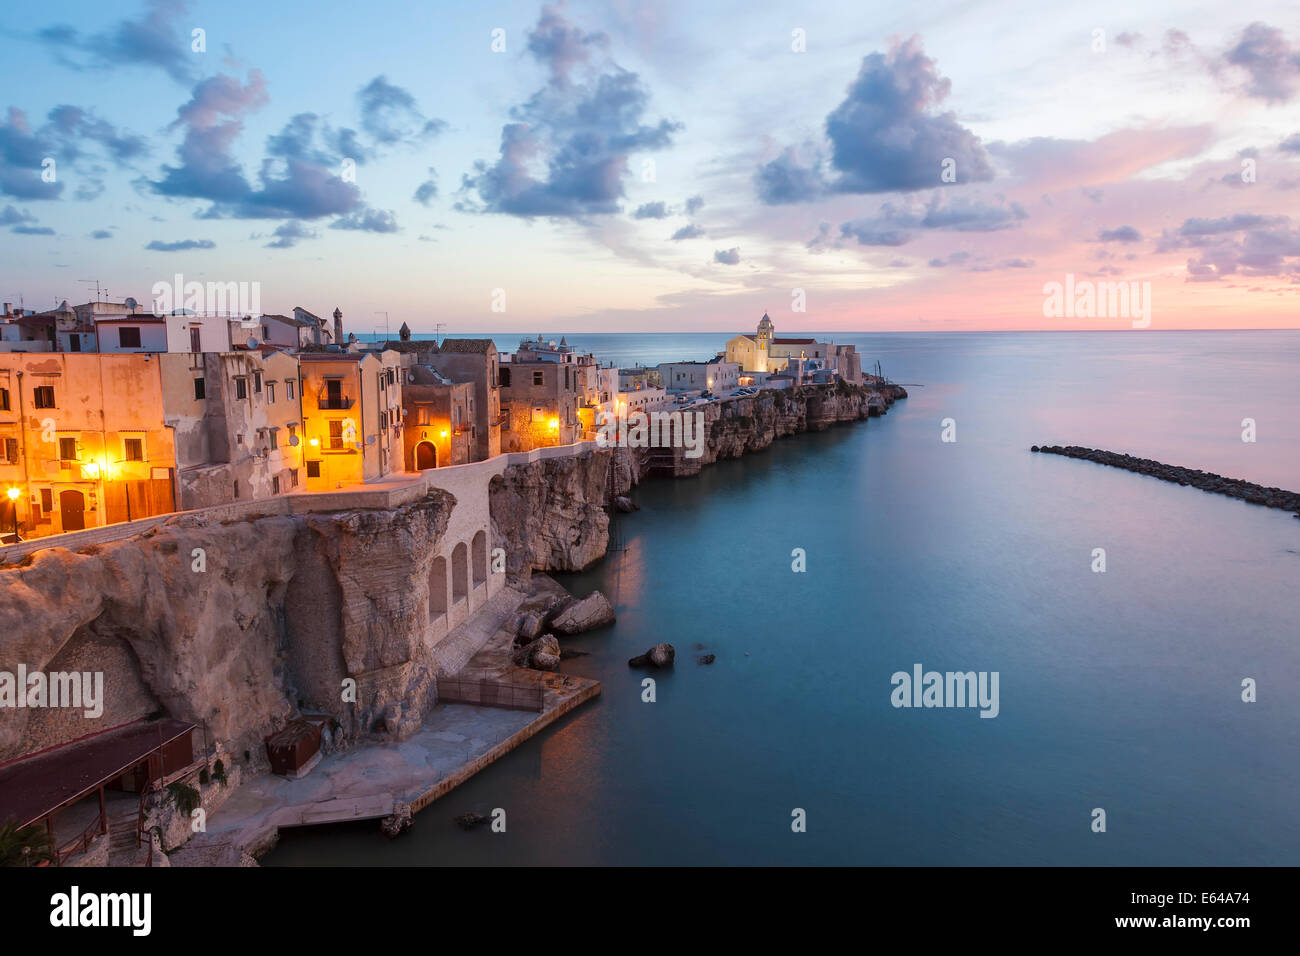 Town with San Francesco church, Vieste, Gargano, Foggia district, Apulia, Puglia, Italy - Stock Image